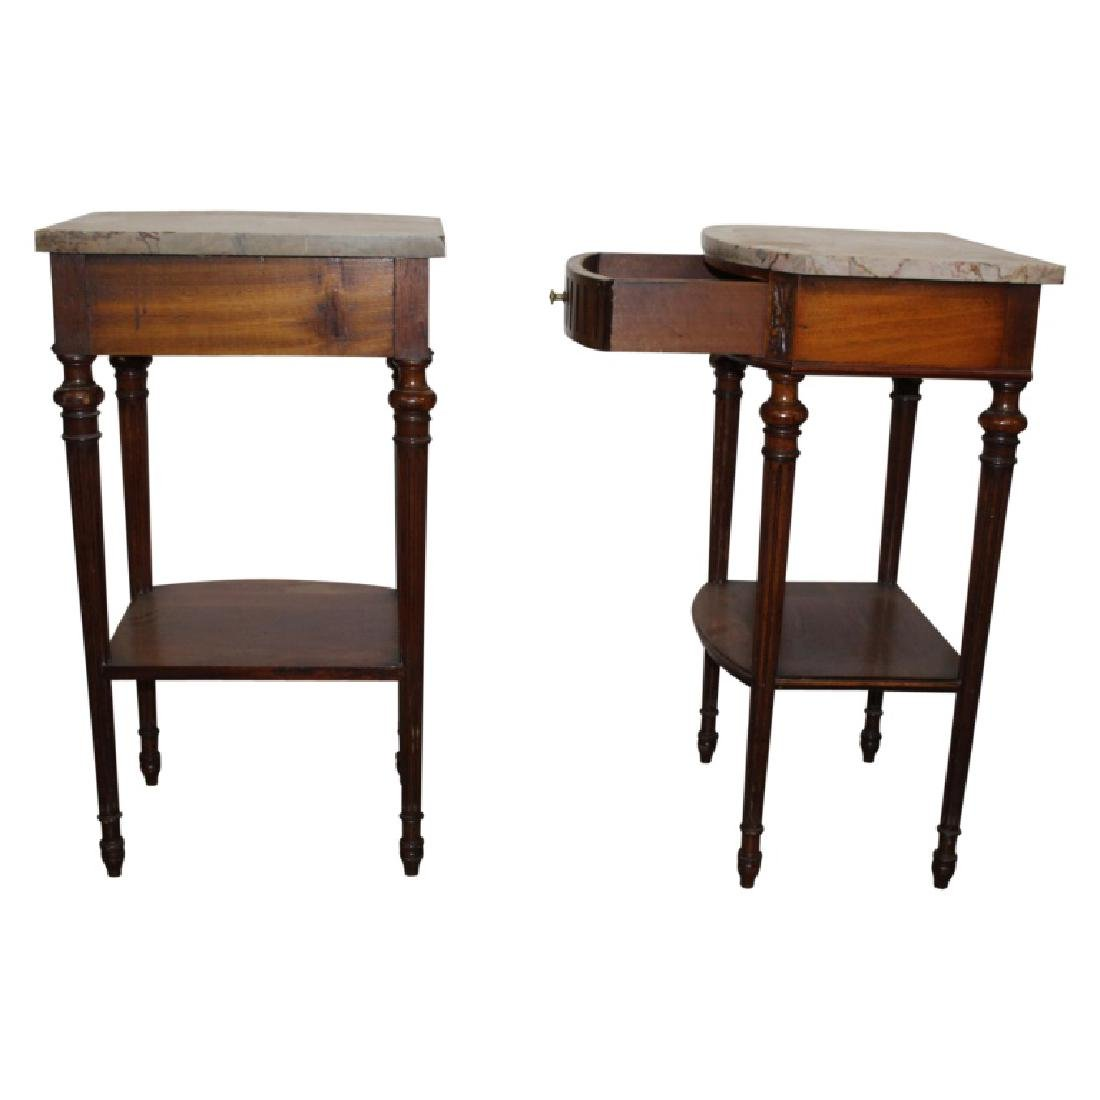 French Marble Top Nightstands - 2